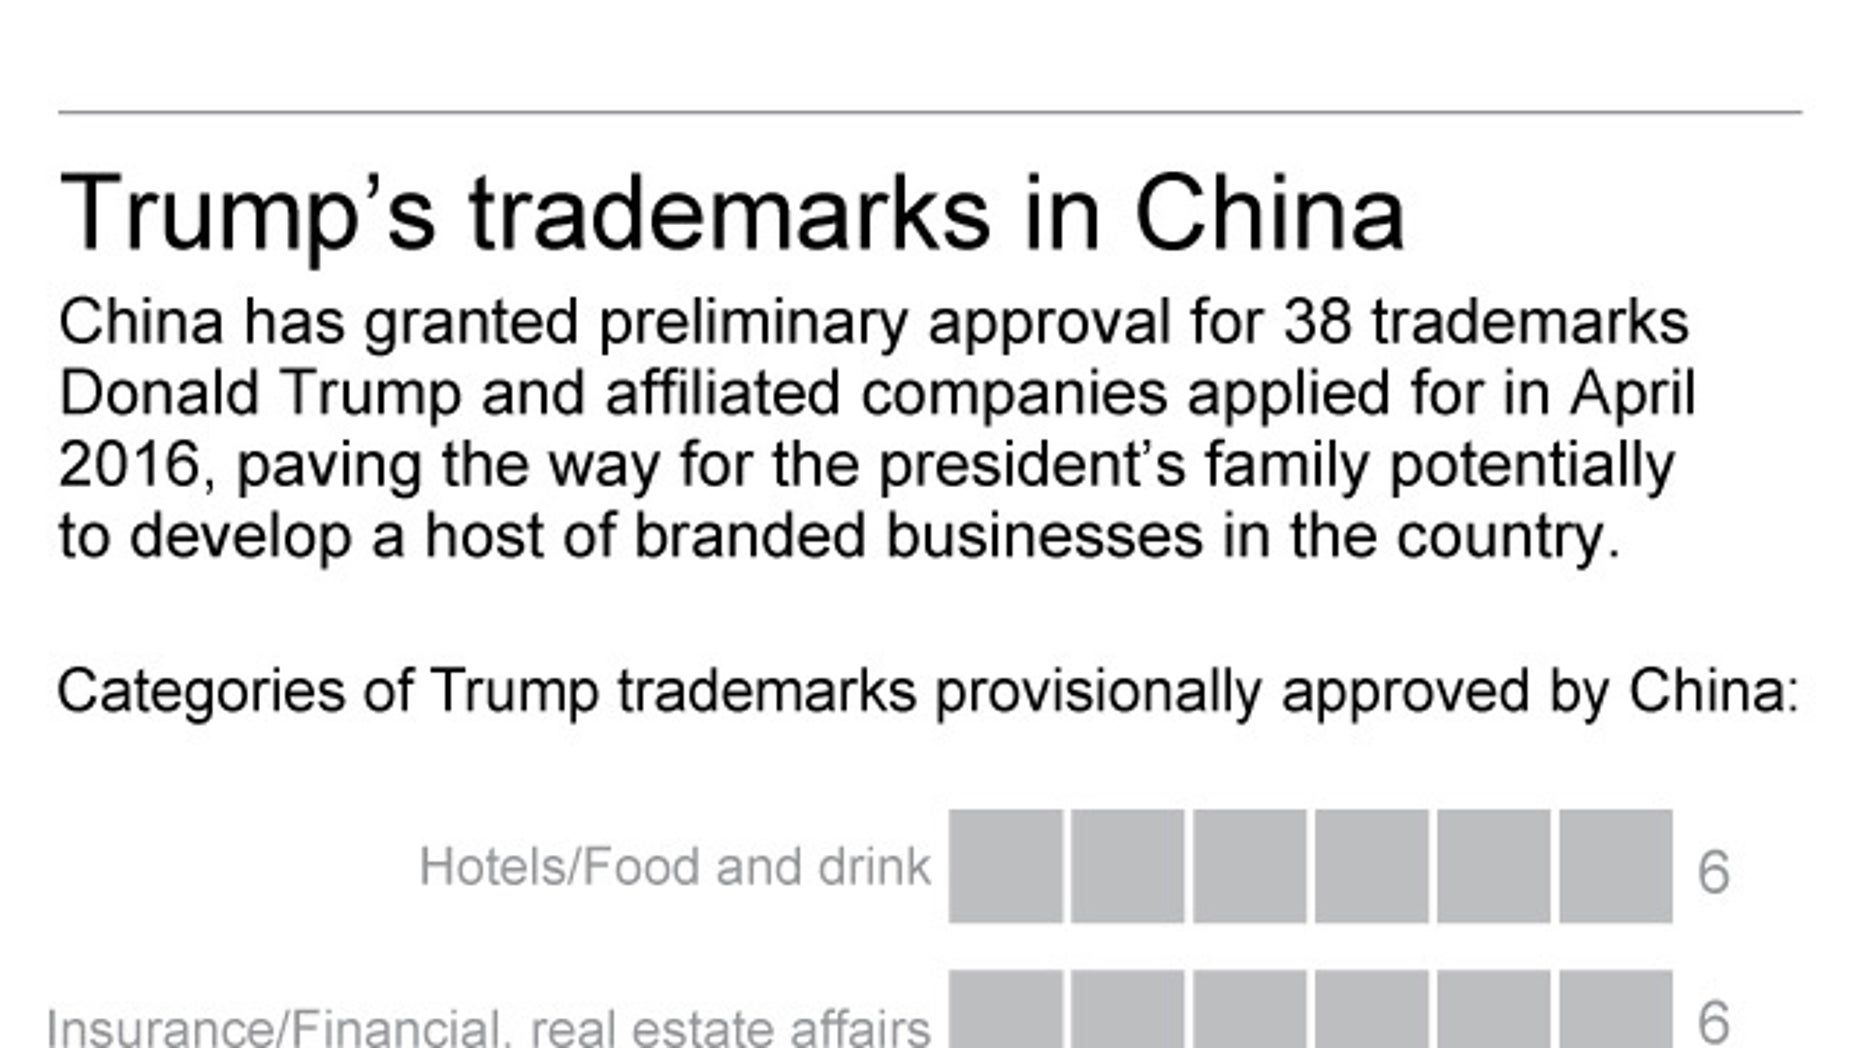 Graphic shows status of Trump trademark applications in China; 2c x 5 inches; 96.3 mm x 127 mm;